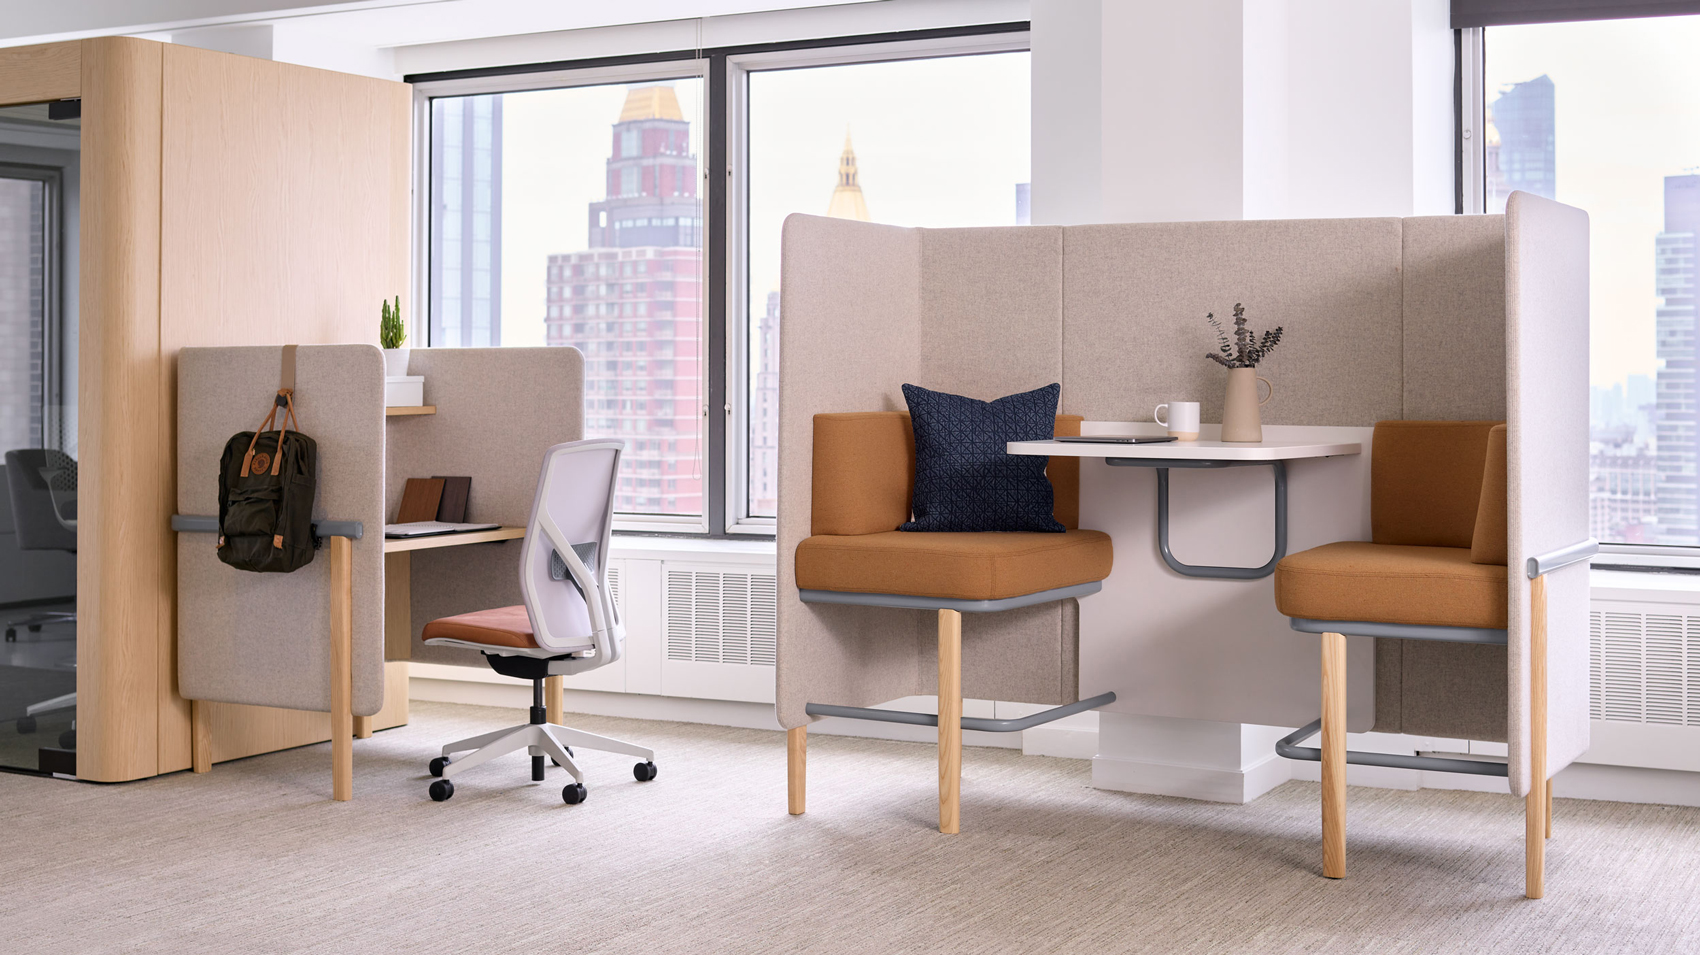 New York showroom work focus area and collaborative zone